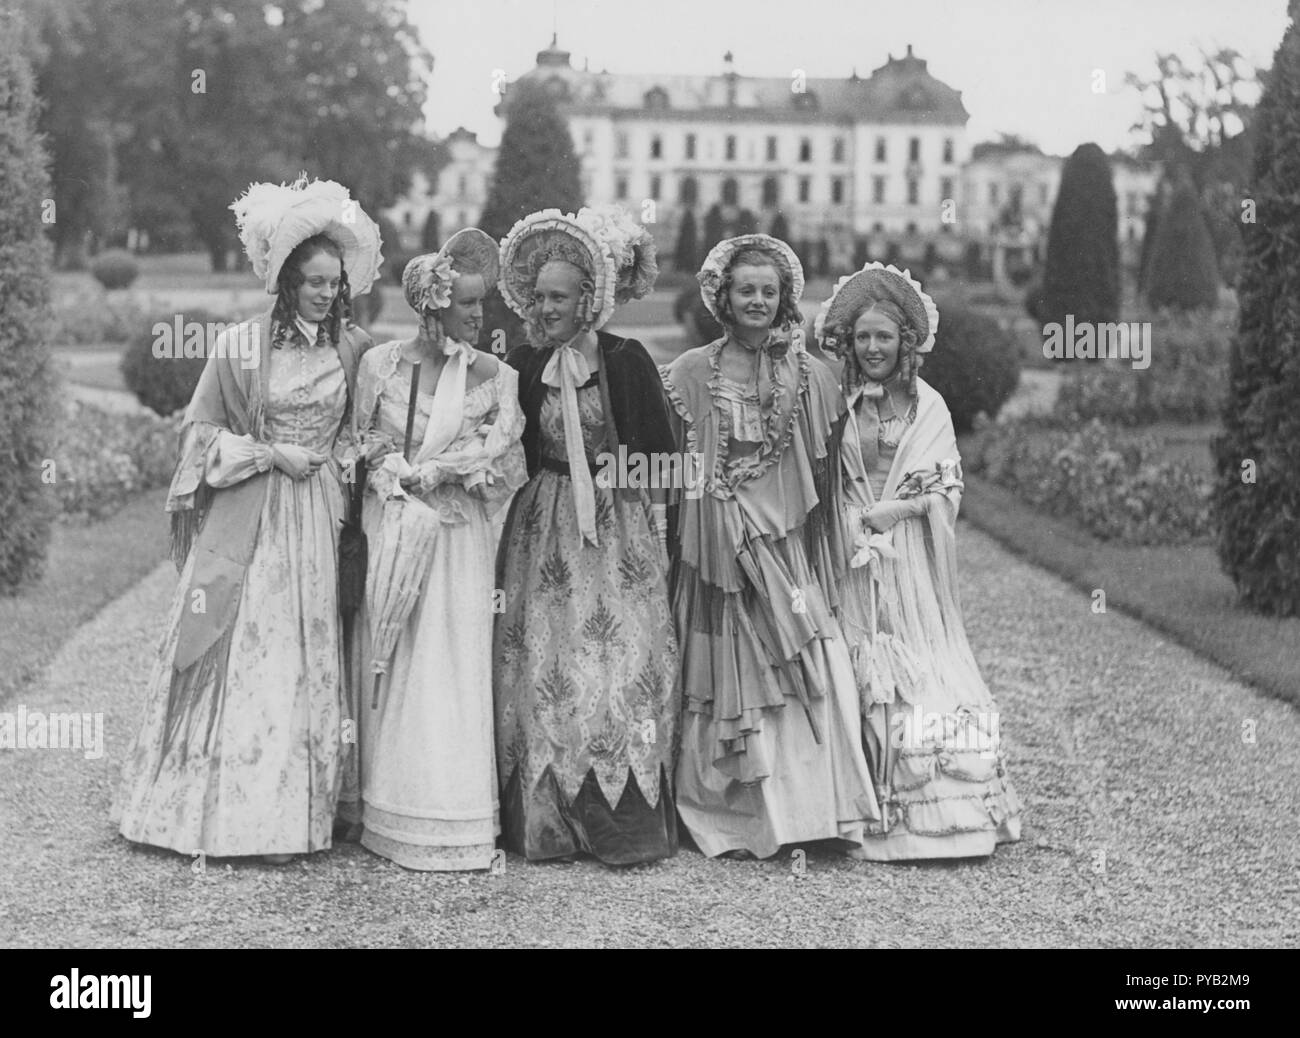 Poke bonnets. A group of five young women in the park of Drottning holm castle,  during the filming of the movie Filmen om Emelie Högqvist 1939. They are all dressed up as ladies of the year 1835. Especially the hats whitch are called Poke bonnet that came into fashion at the beginning of the 19th century. - Stock Image